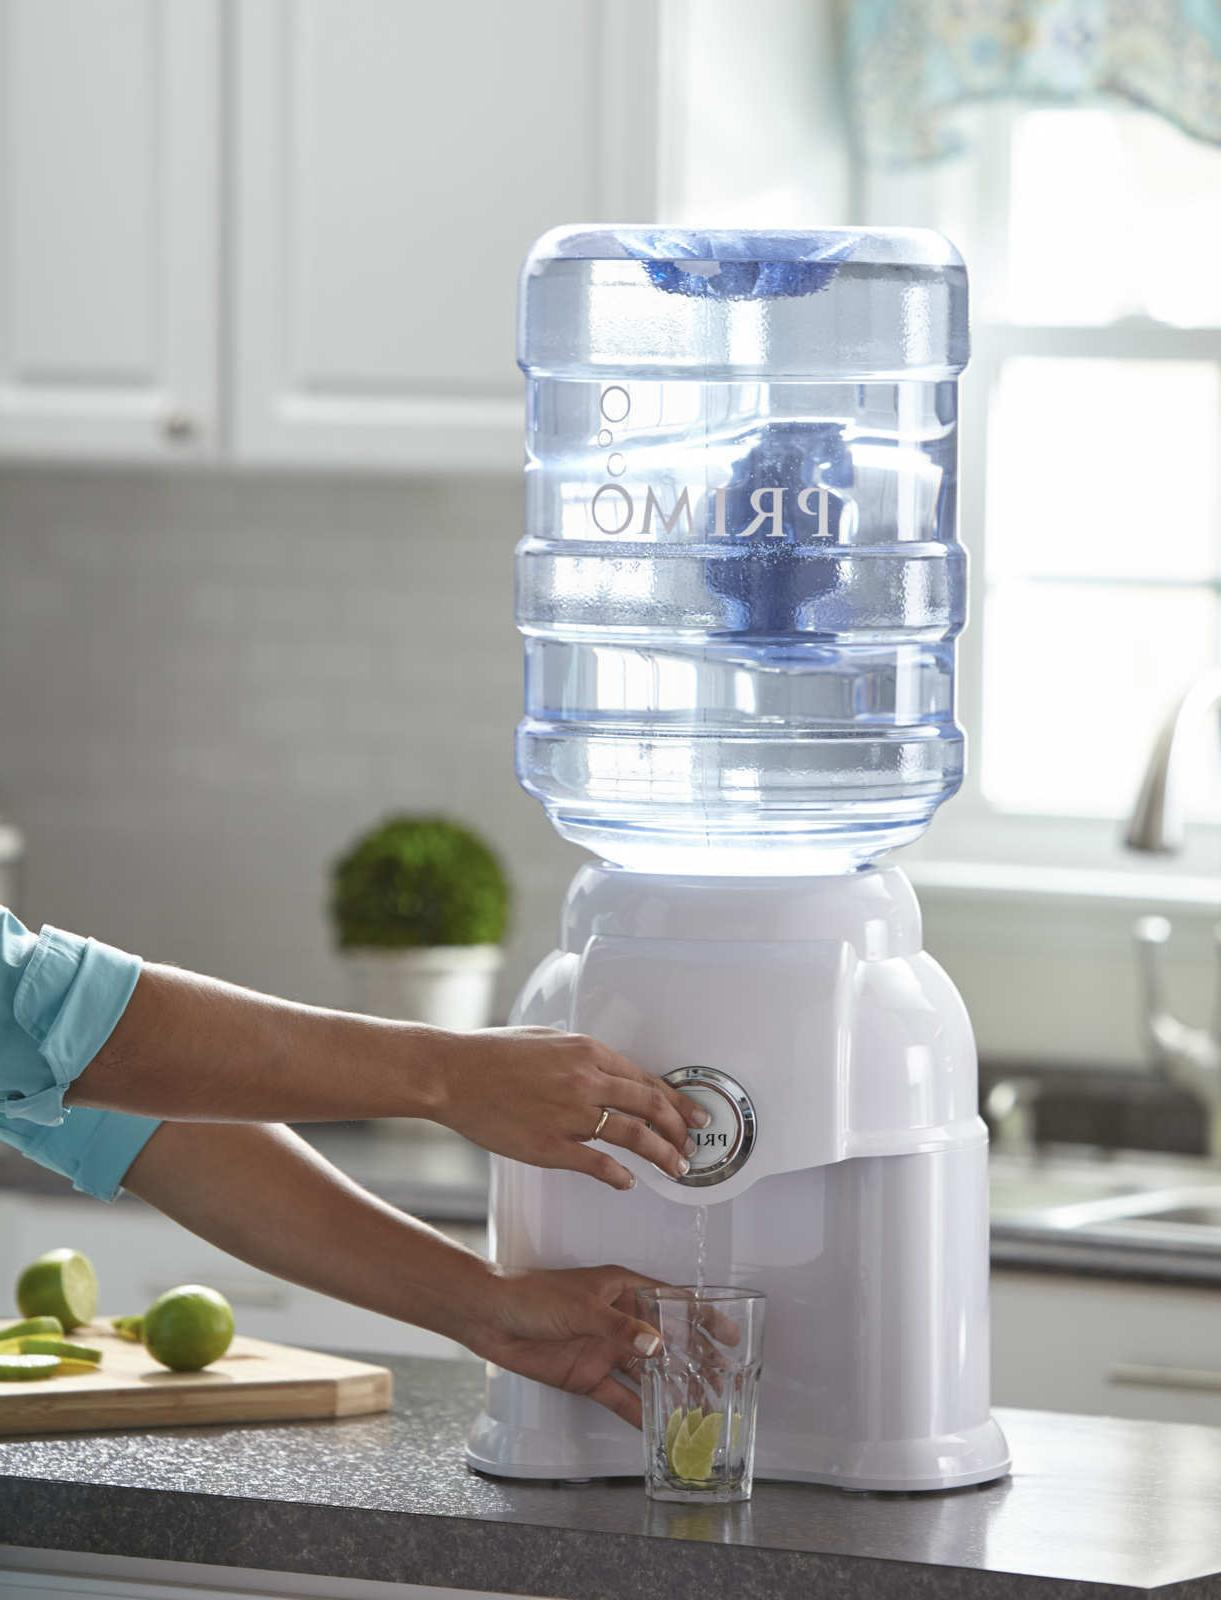 Primo White Countertop Room Temperature Water Dispenser